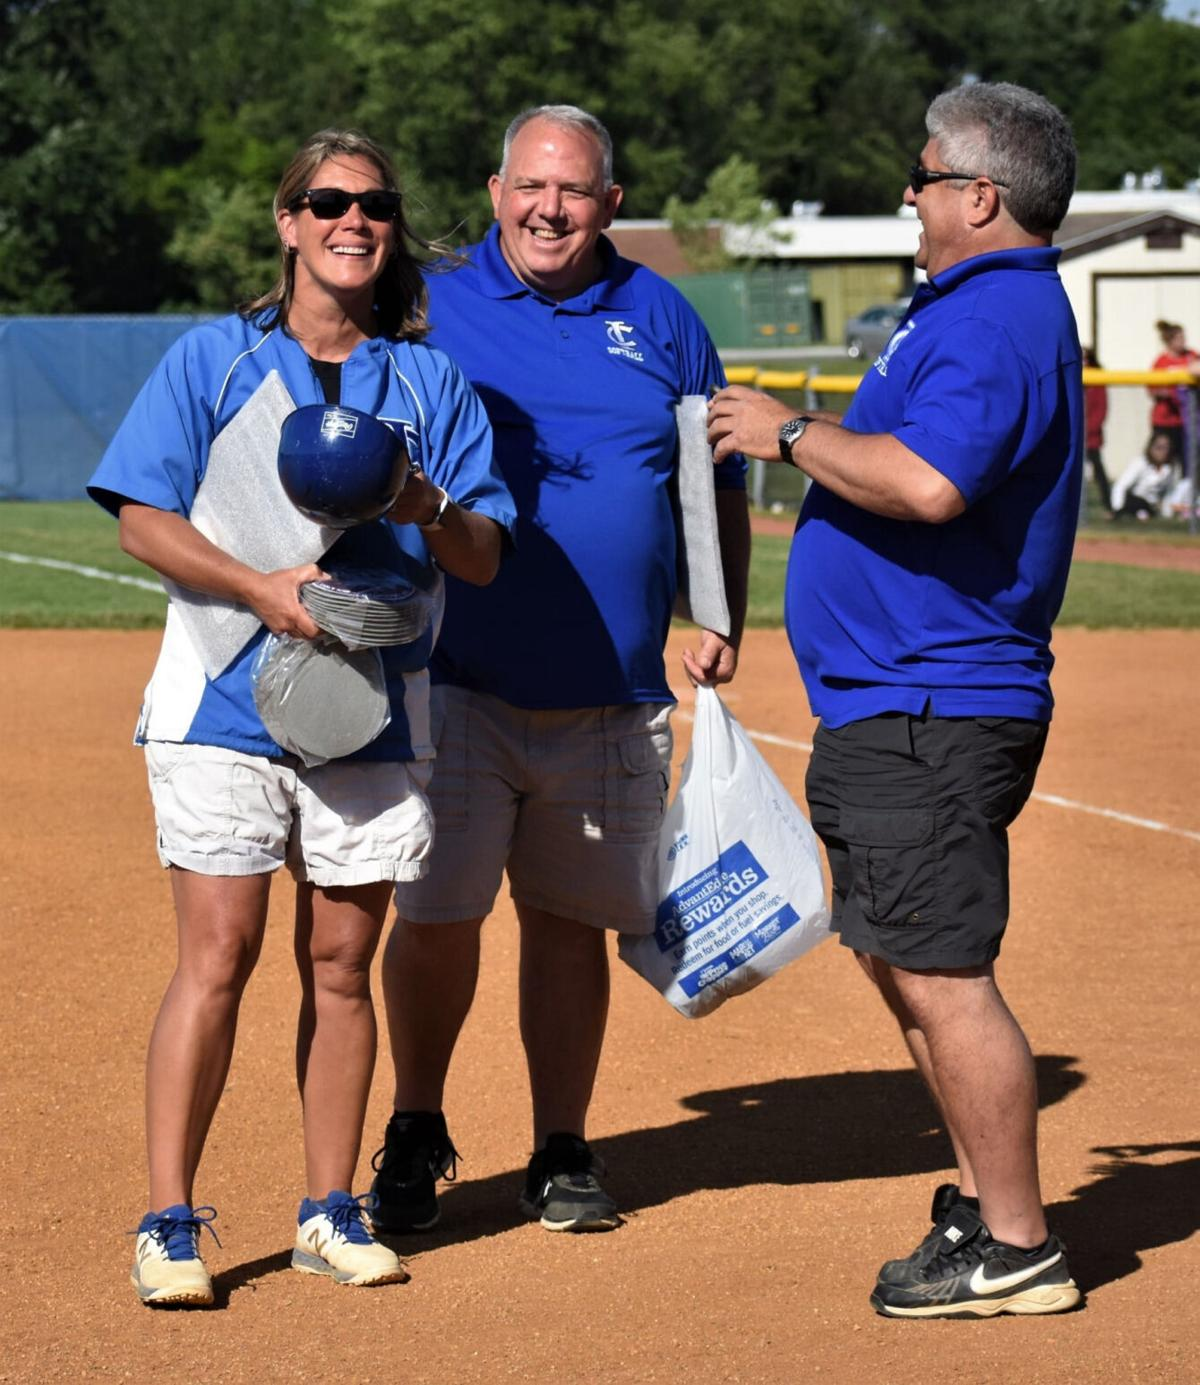 H.S. SOFTBALL: ICC's Milazzo, Nytransky McComb earn state's highest honors